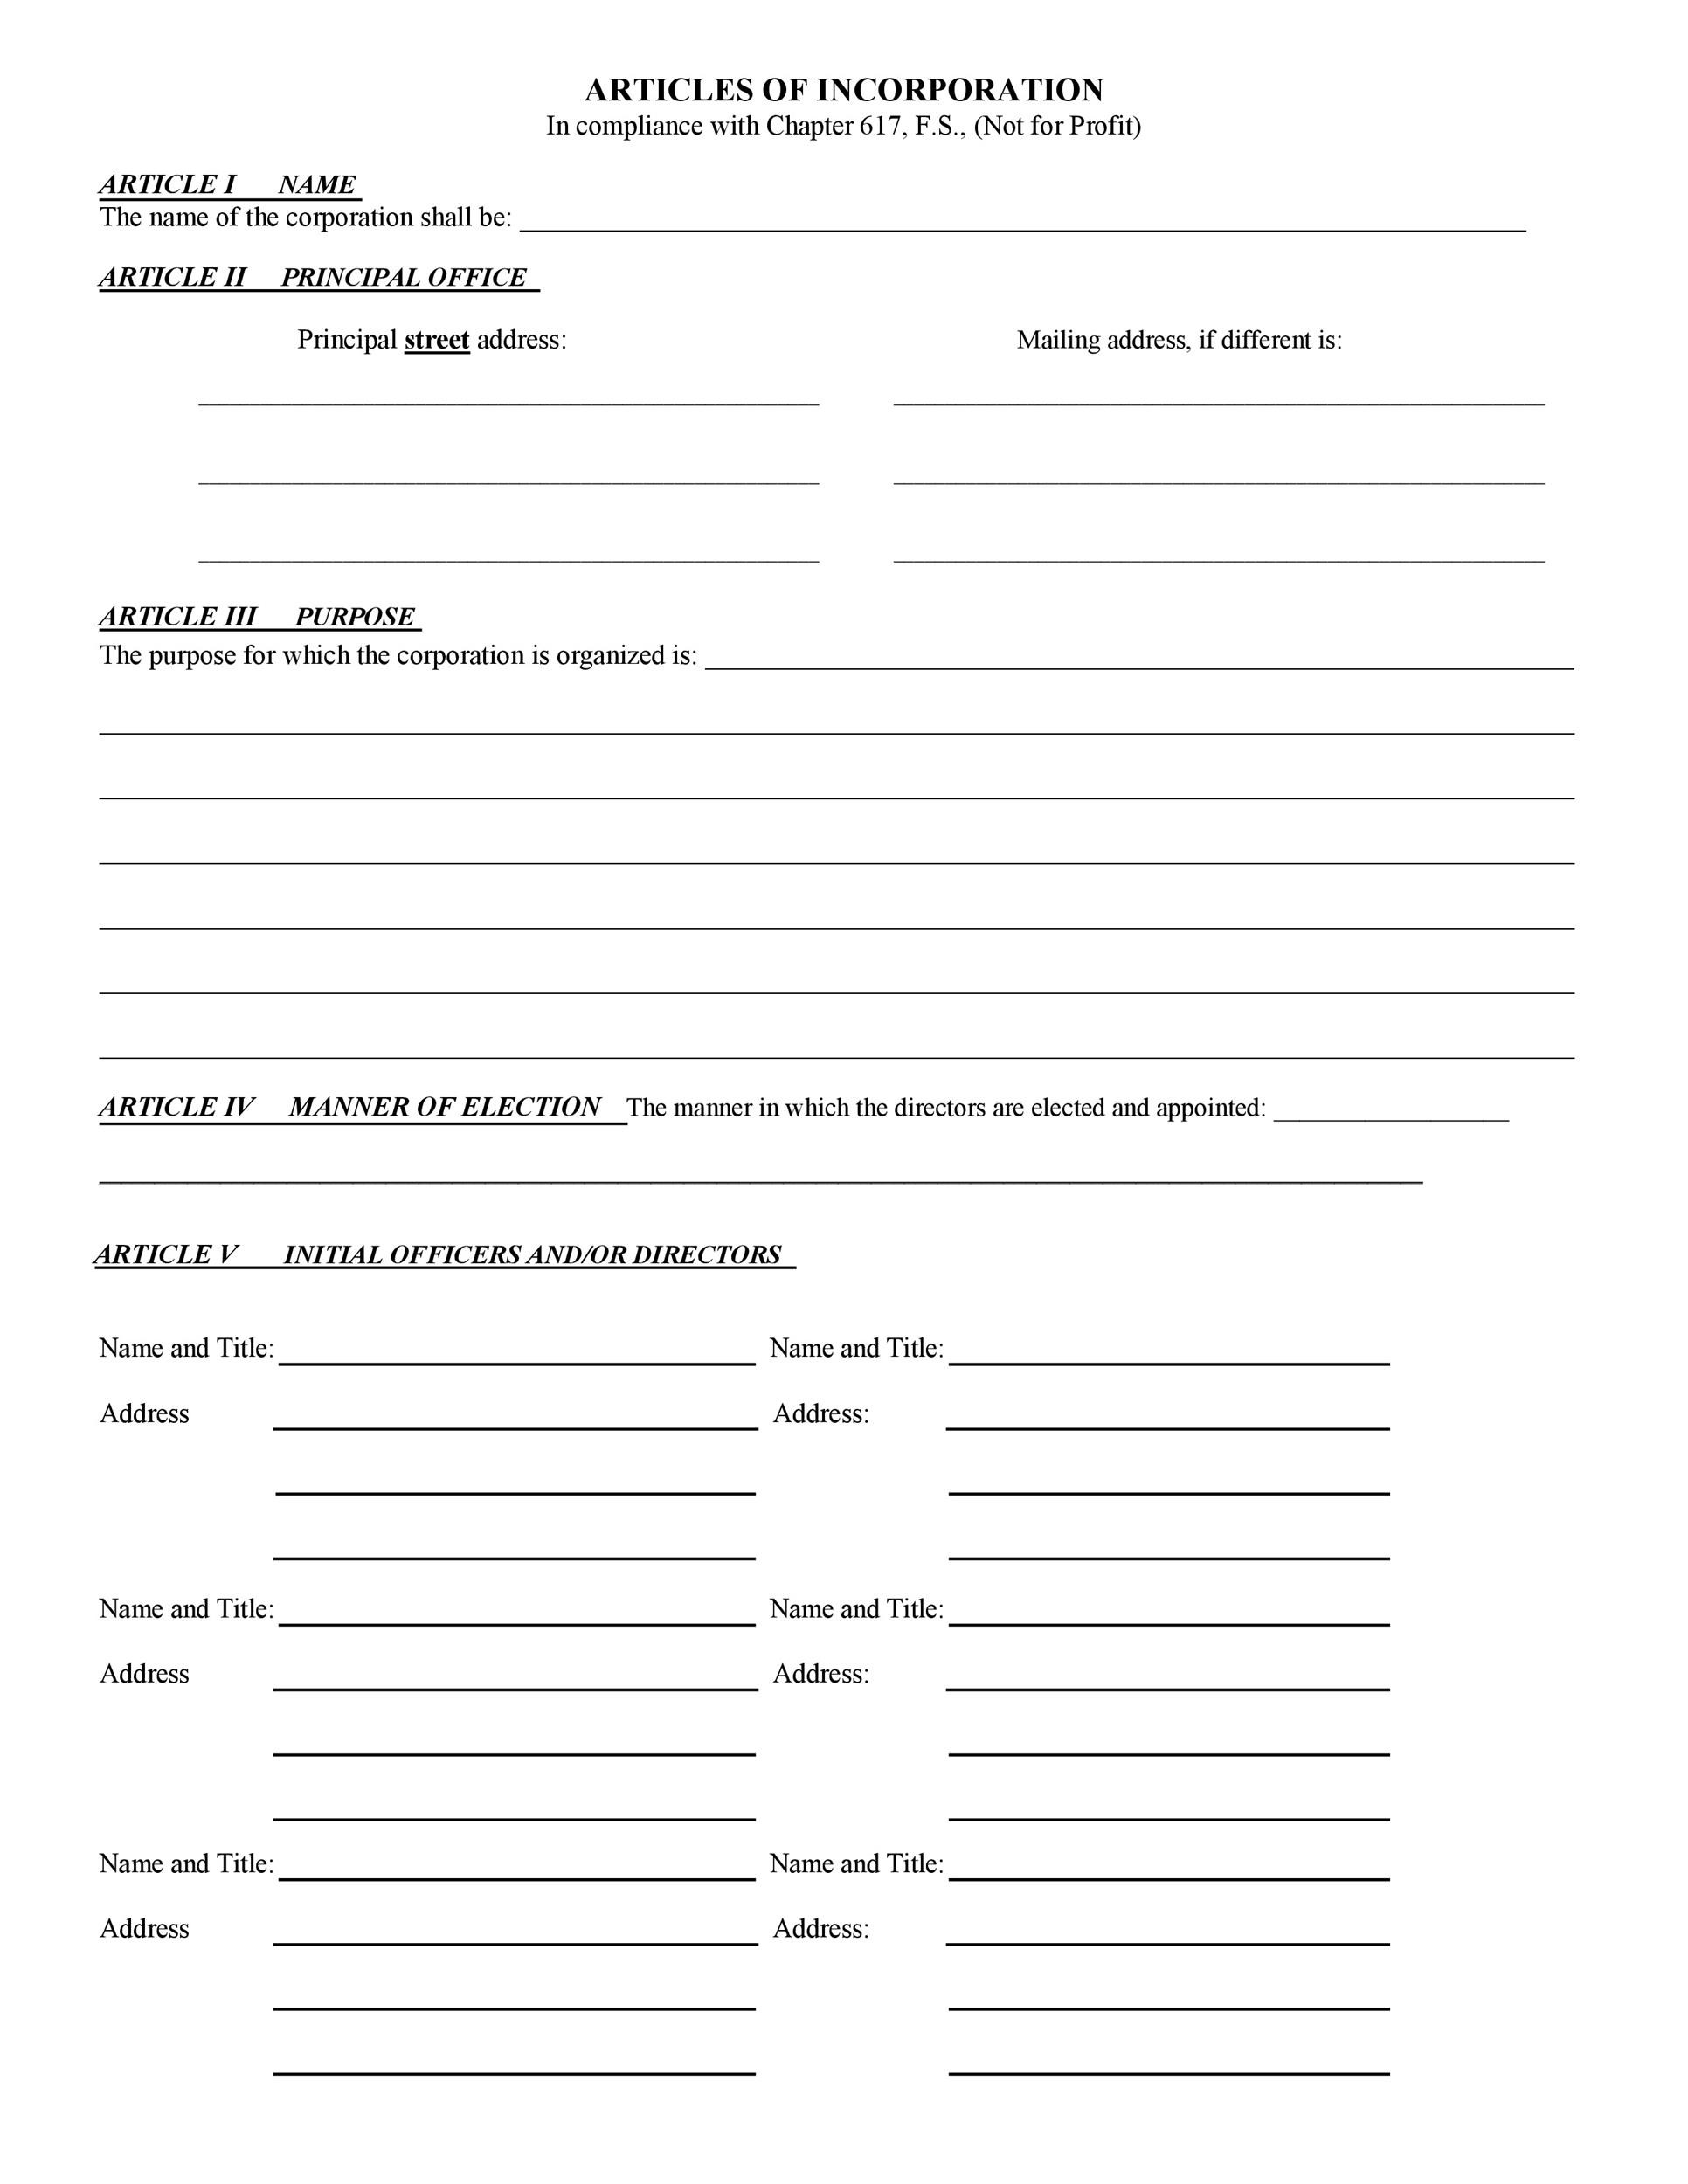 Free articles of incorporation template 22